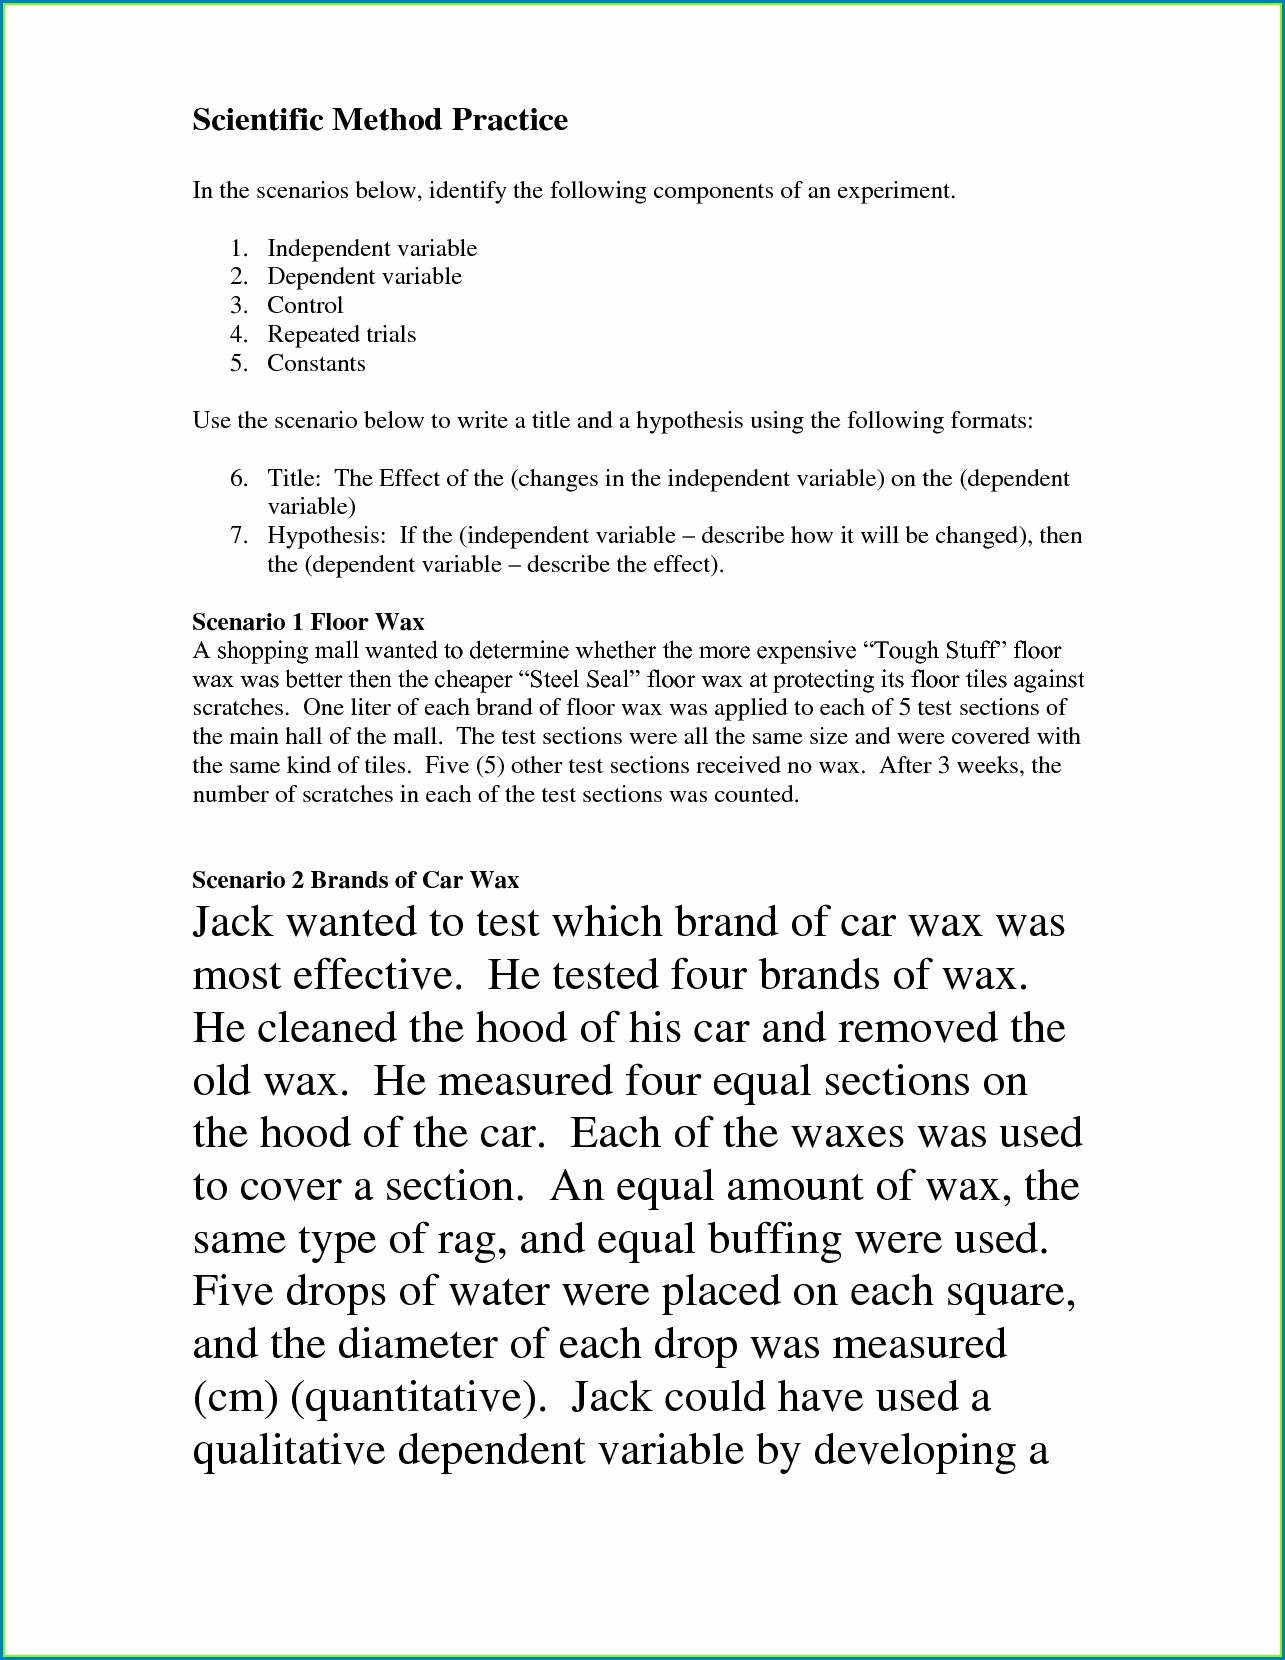 Scientific Method Controls And Variables Worksheet Answers